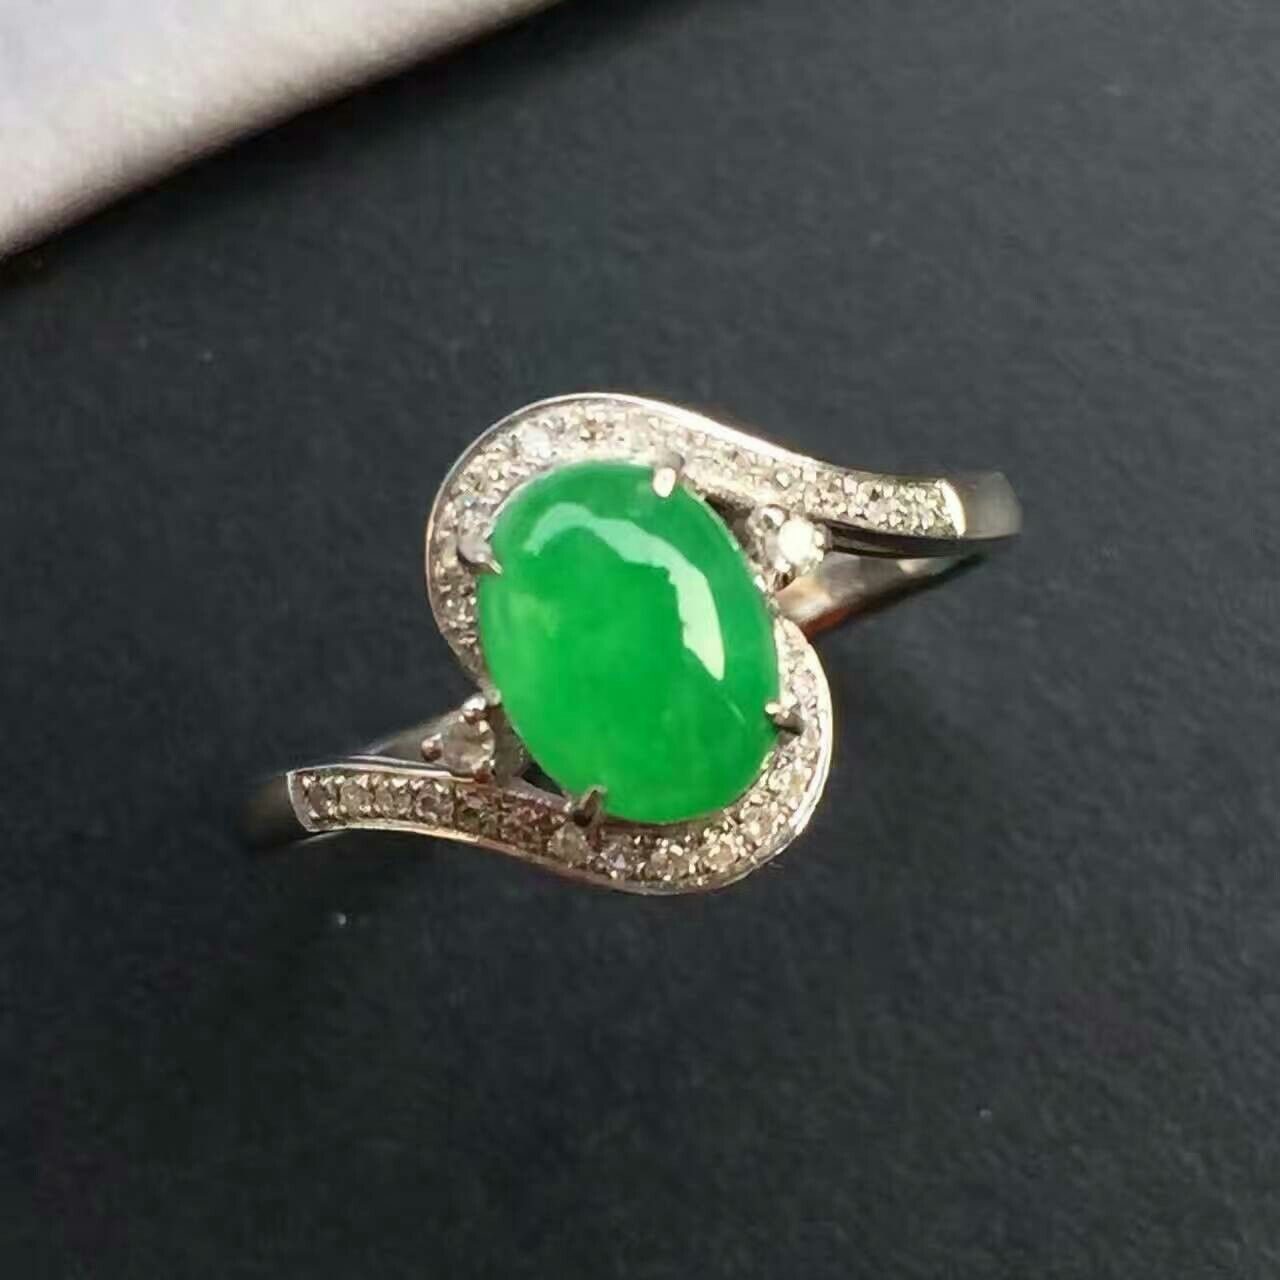 certified emerald il oval ct mined real c huge gemstone green birth genuine cut large may natural earth fullxfull products